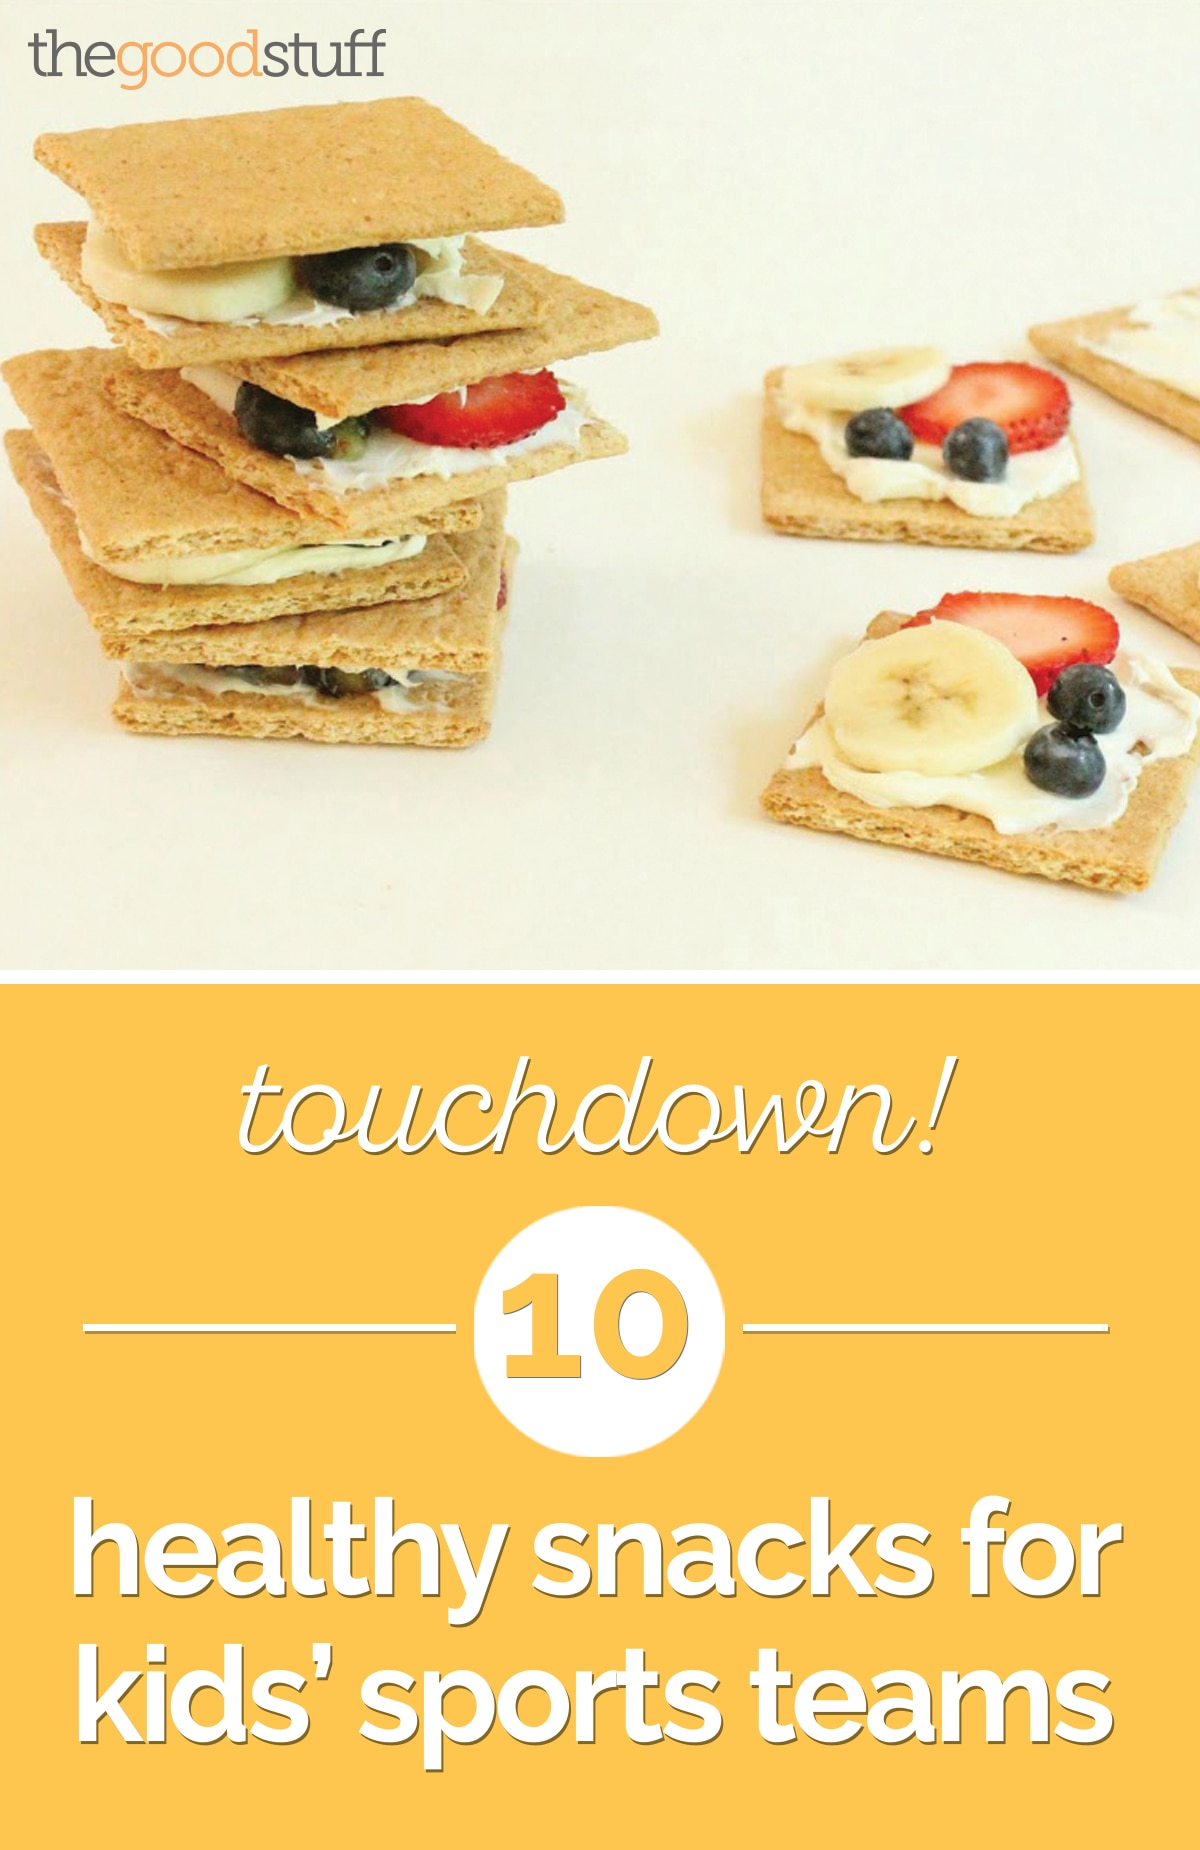 Touchdown! 10 Healthy Snacks for Kids' Sports Teams | thegoodstuff